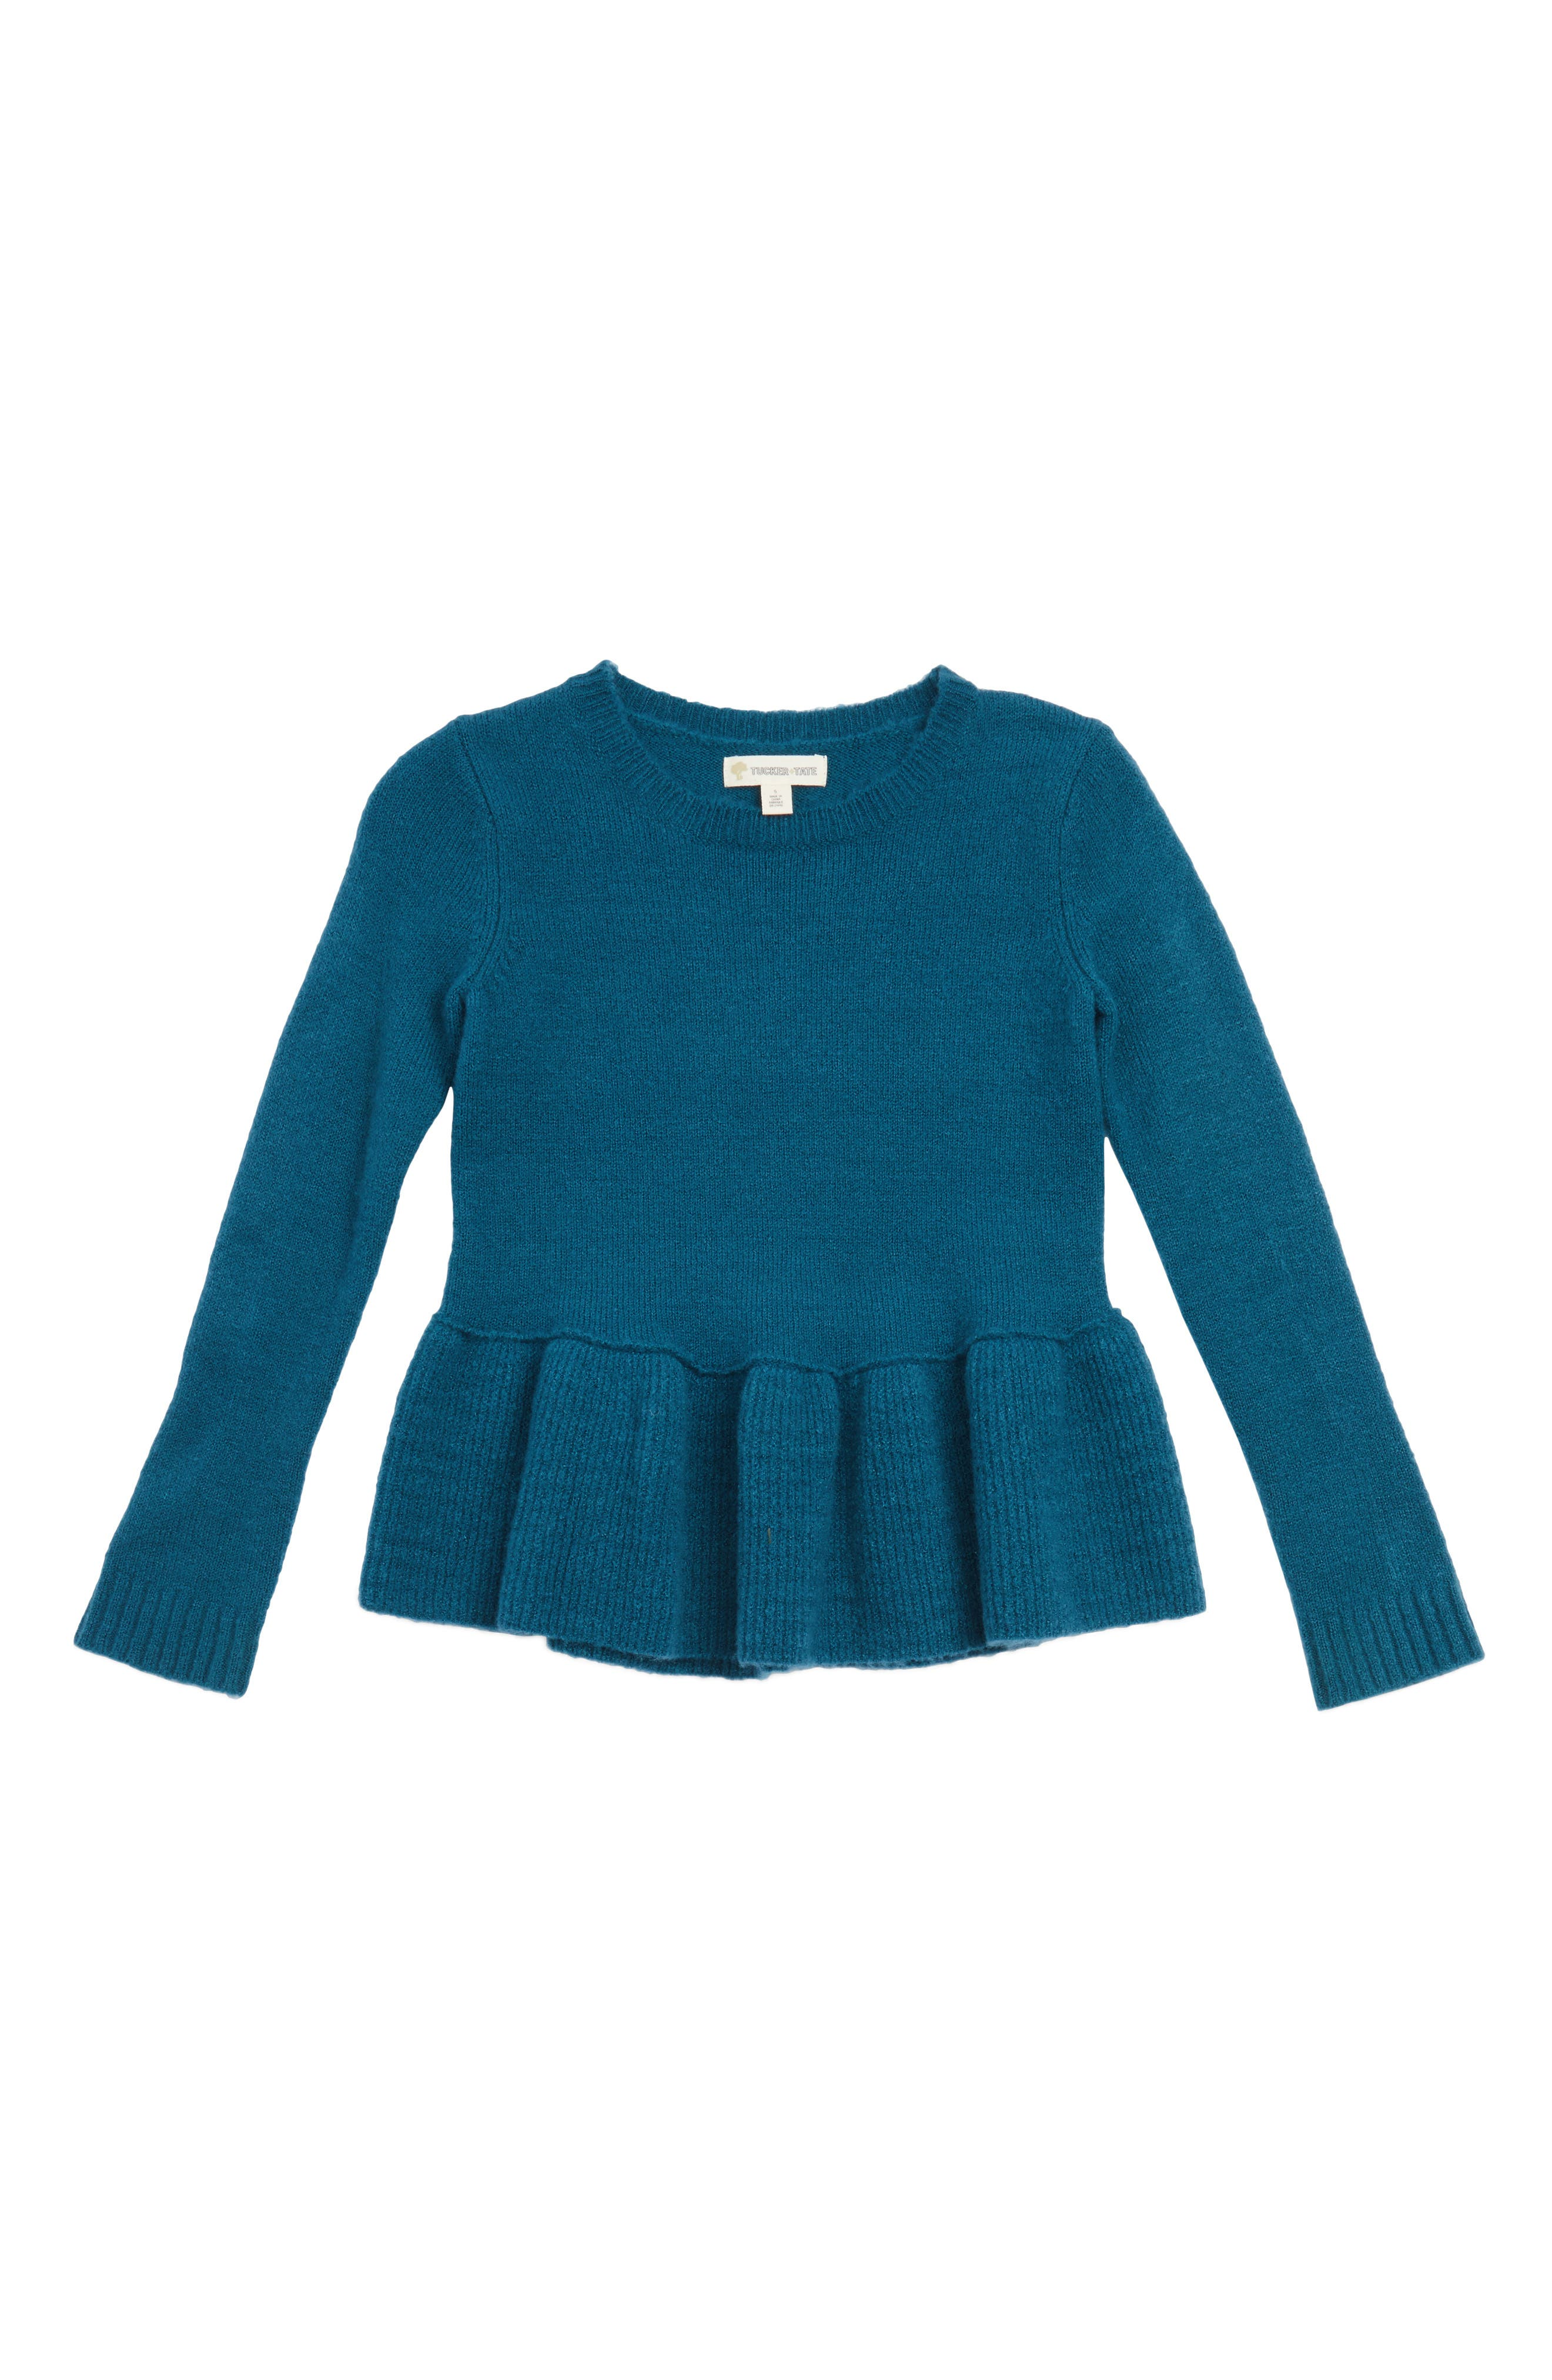 TUCKER + TATE Ruffle Hem Sweater